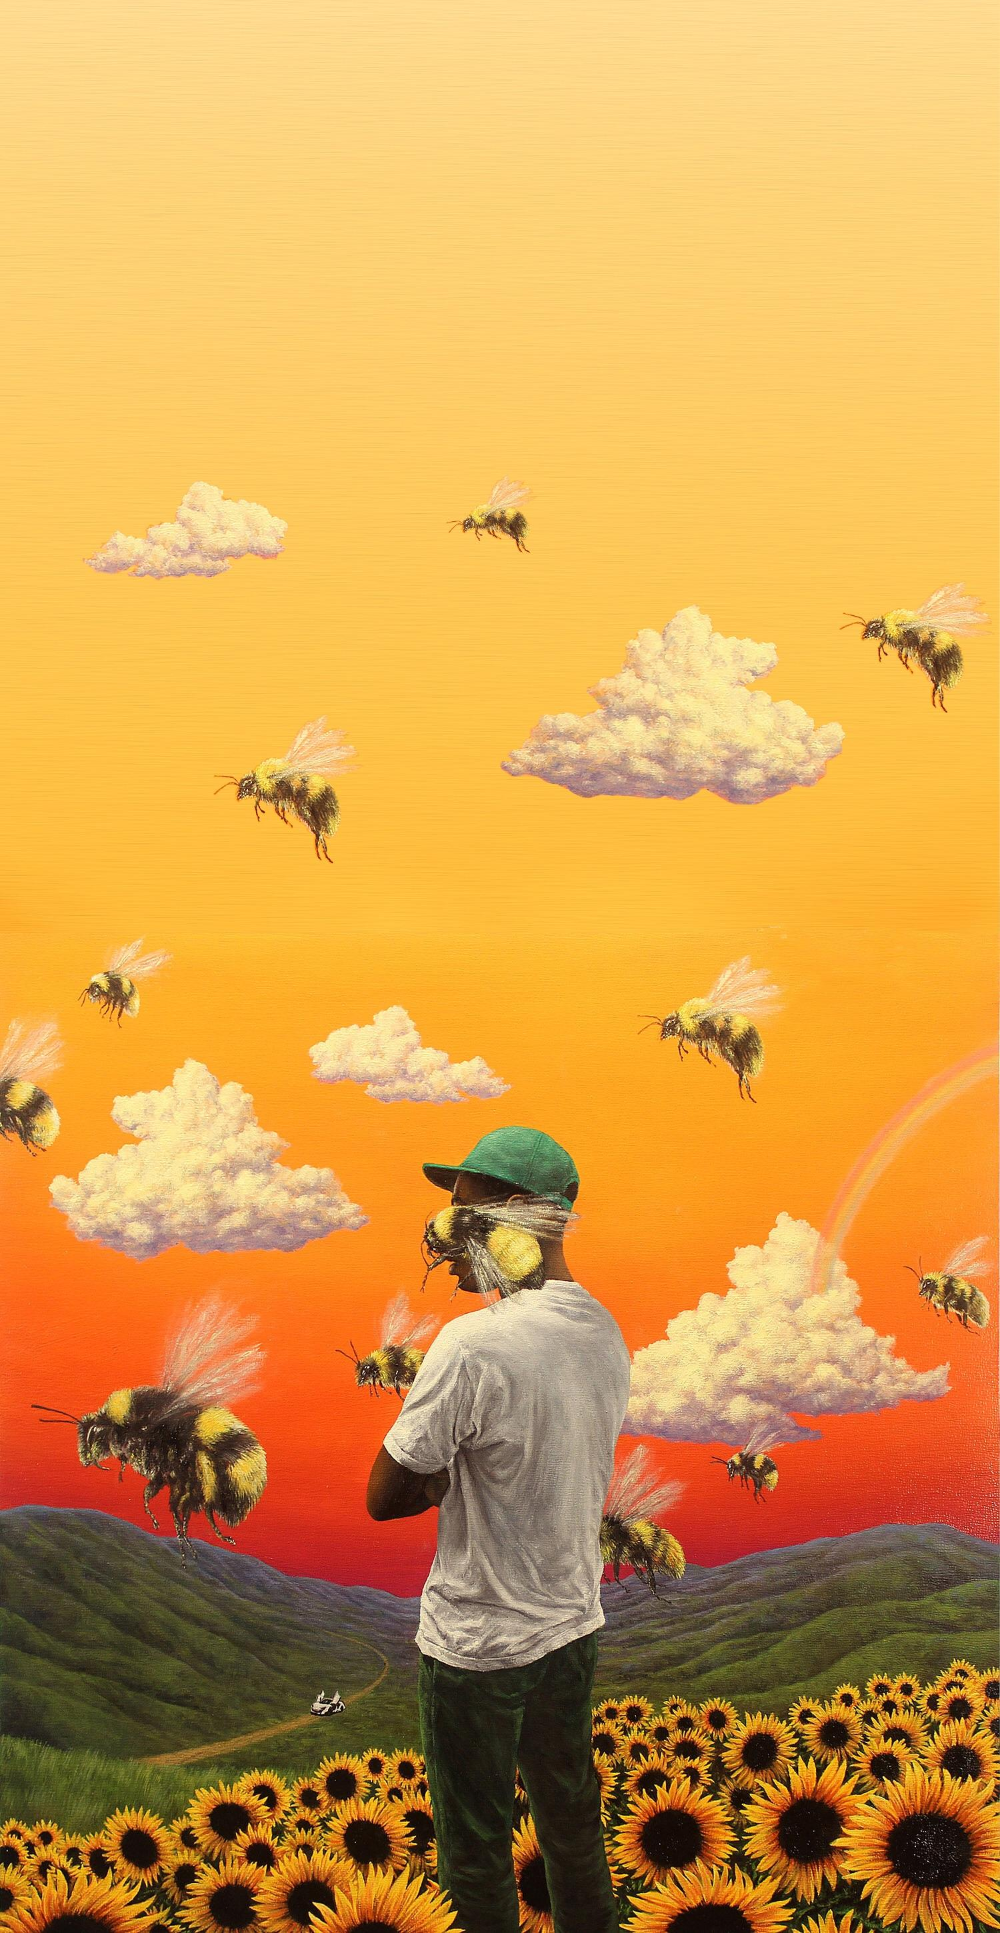 High Res Flower Boy Wallpaper So Tyler The Creator Wallpaper Future Wallpaper Photo Wall Collage